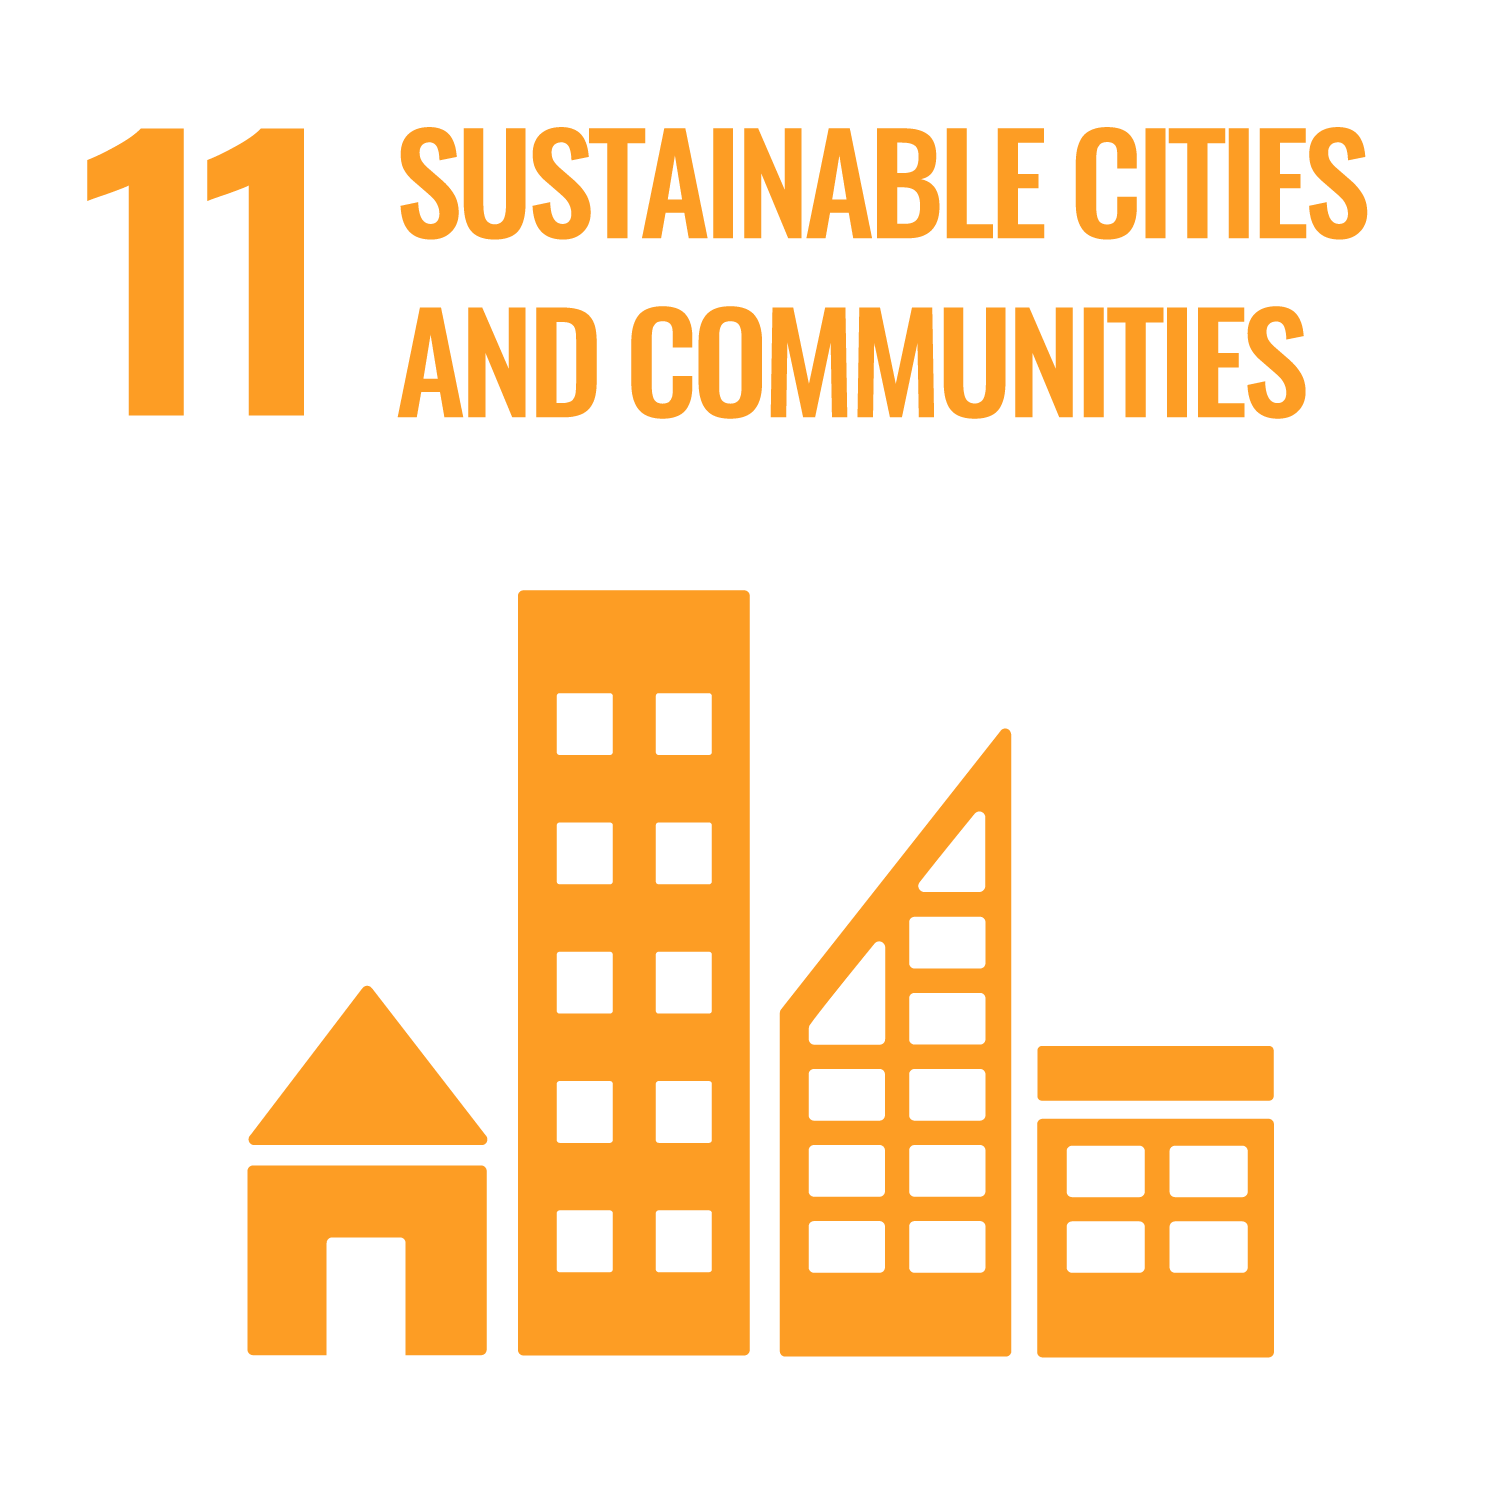 11_Sustainable_Cities_And_Communities